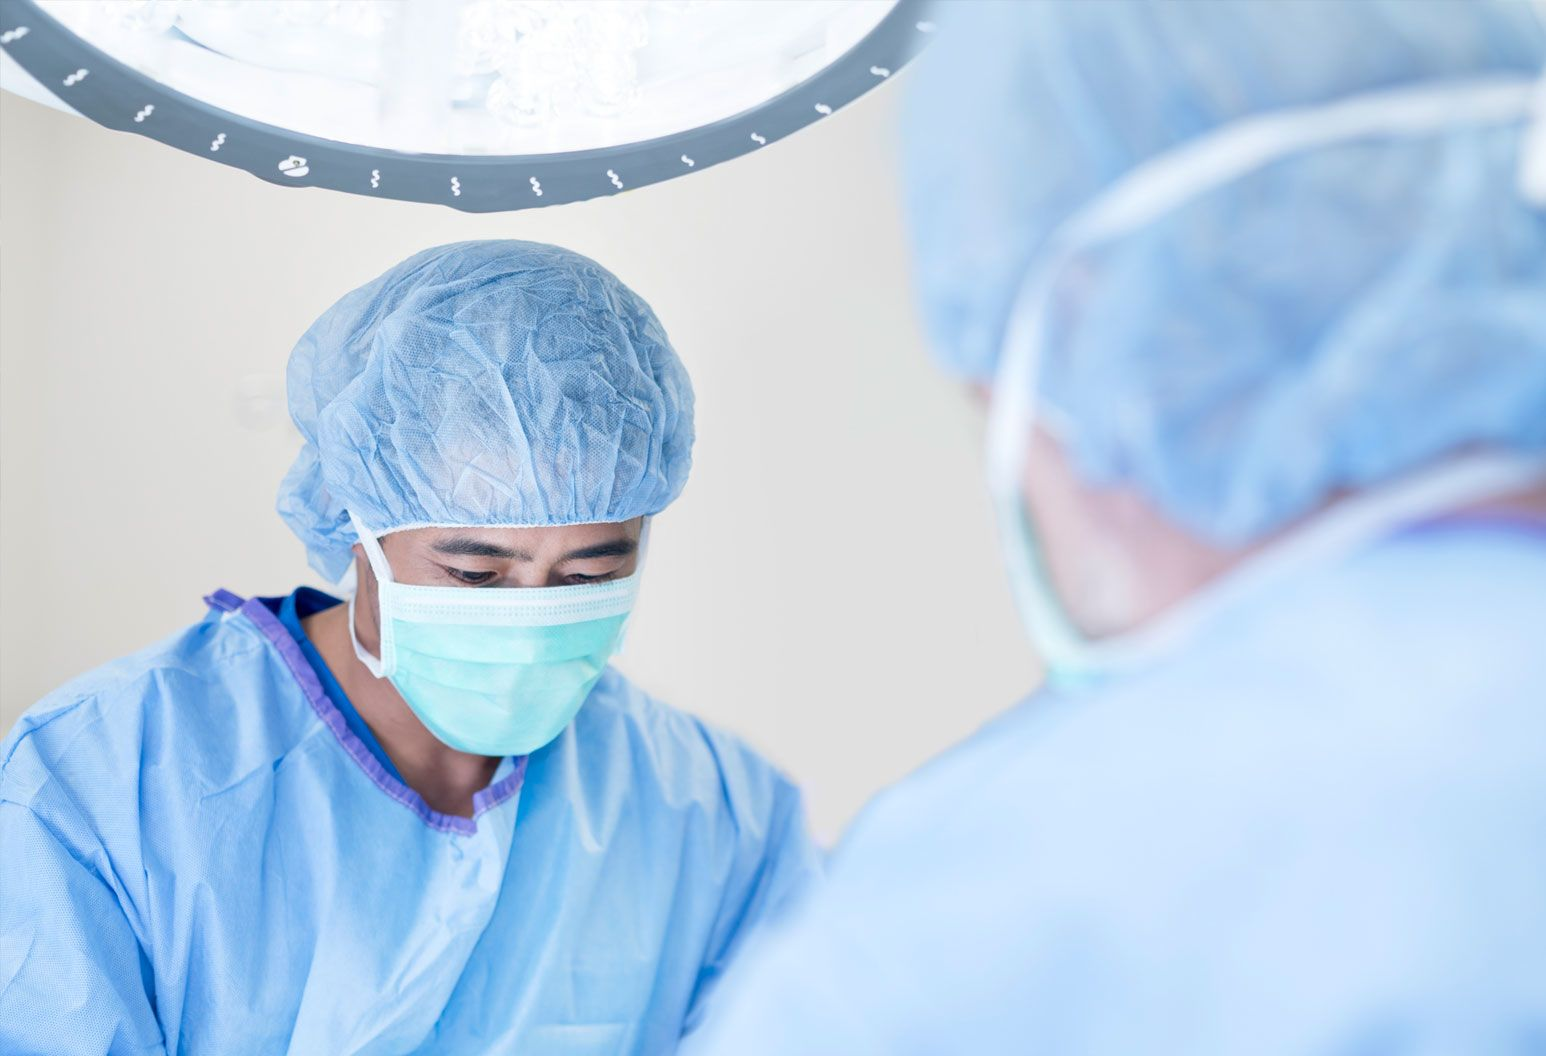 Close up of male surgeon wearing blue scrubs, hat and face mask in the operating room.